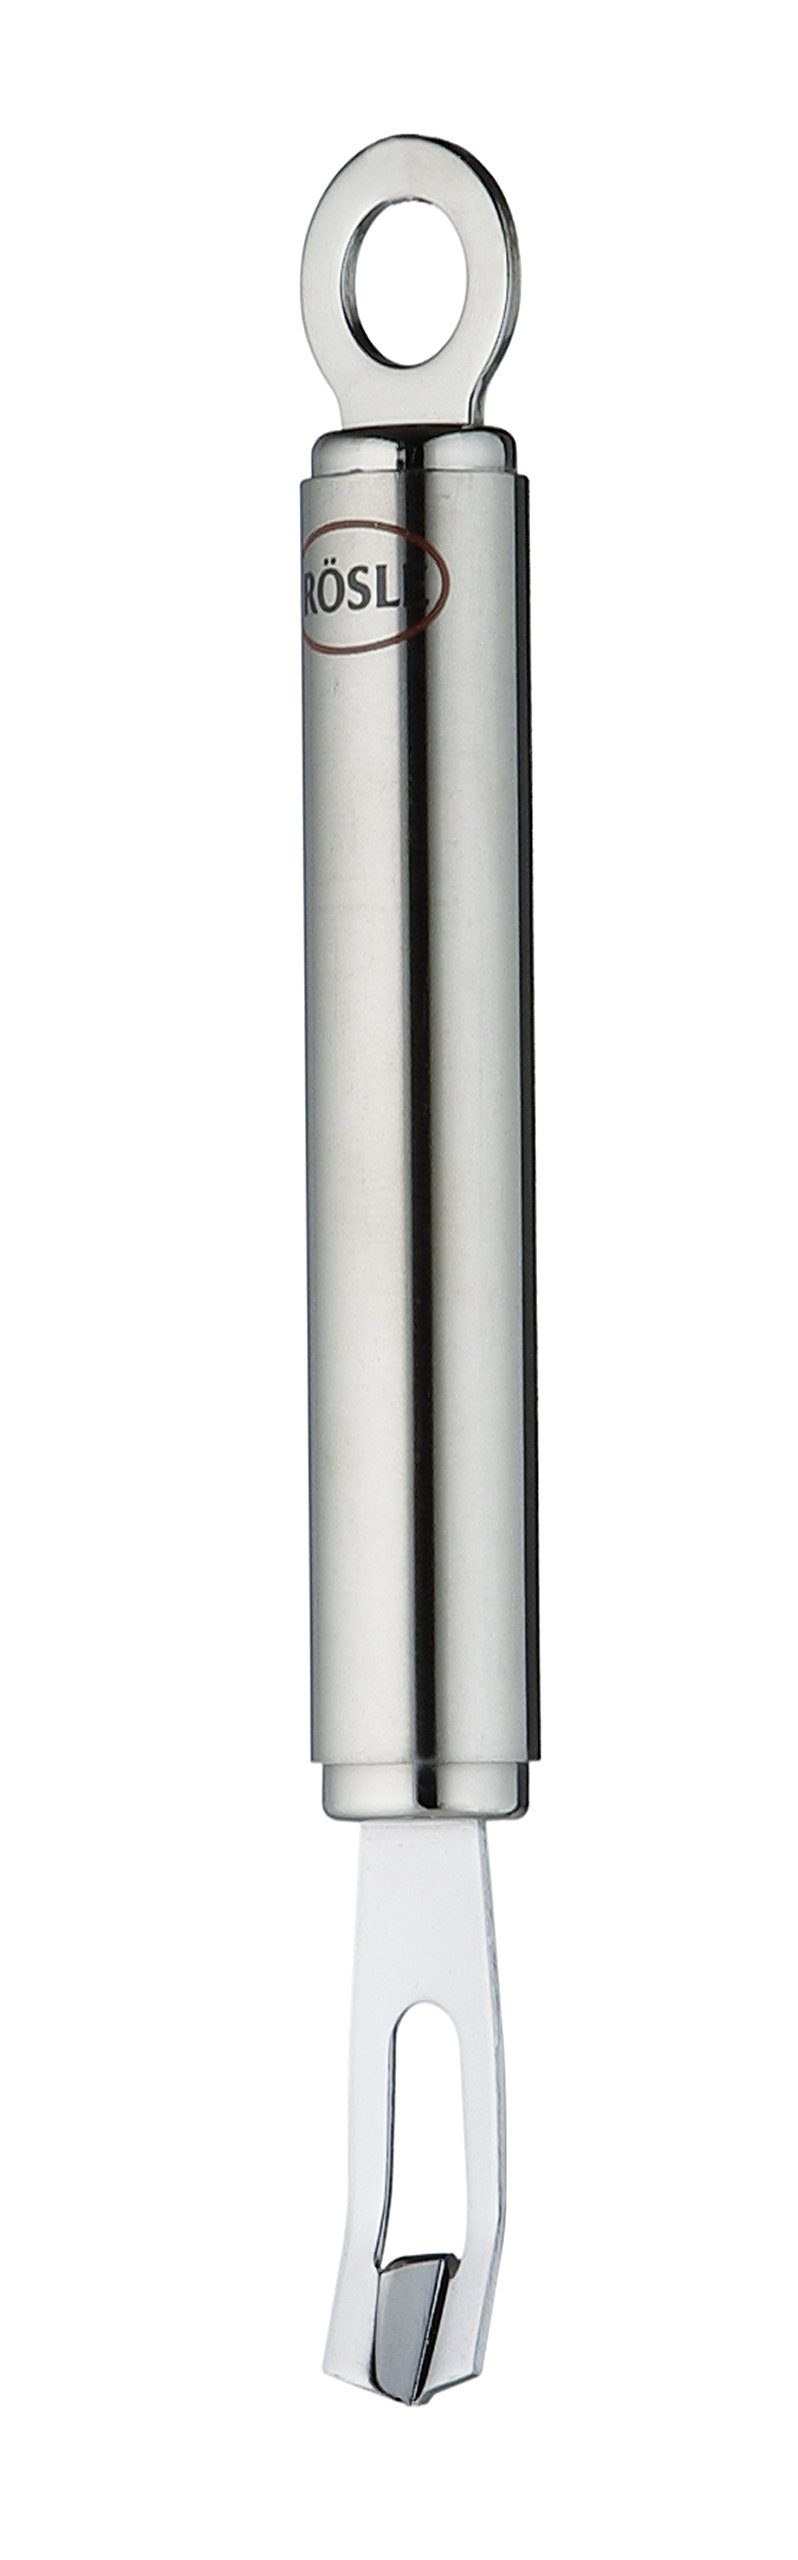 Rosle Stainless Steel Round-Handle Vertical Cannelle, 6.5-inch by Rosle